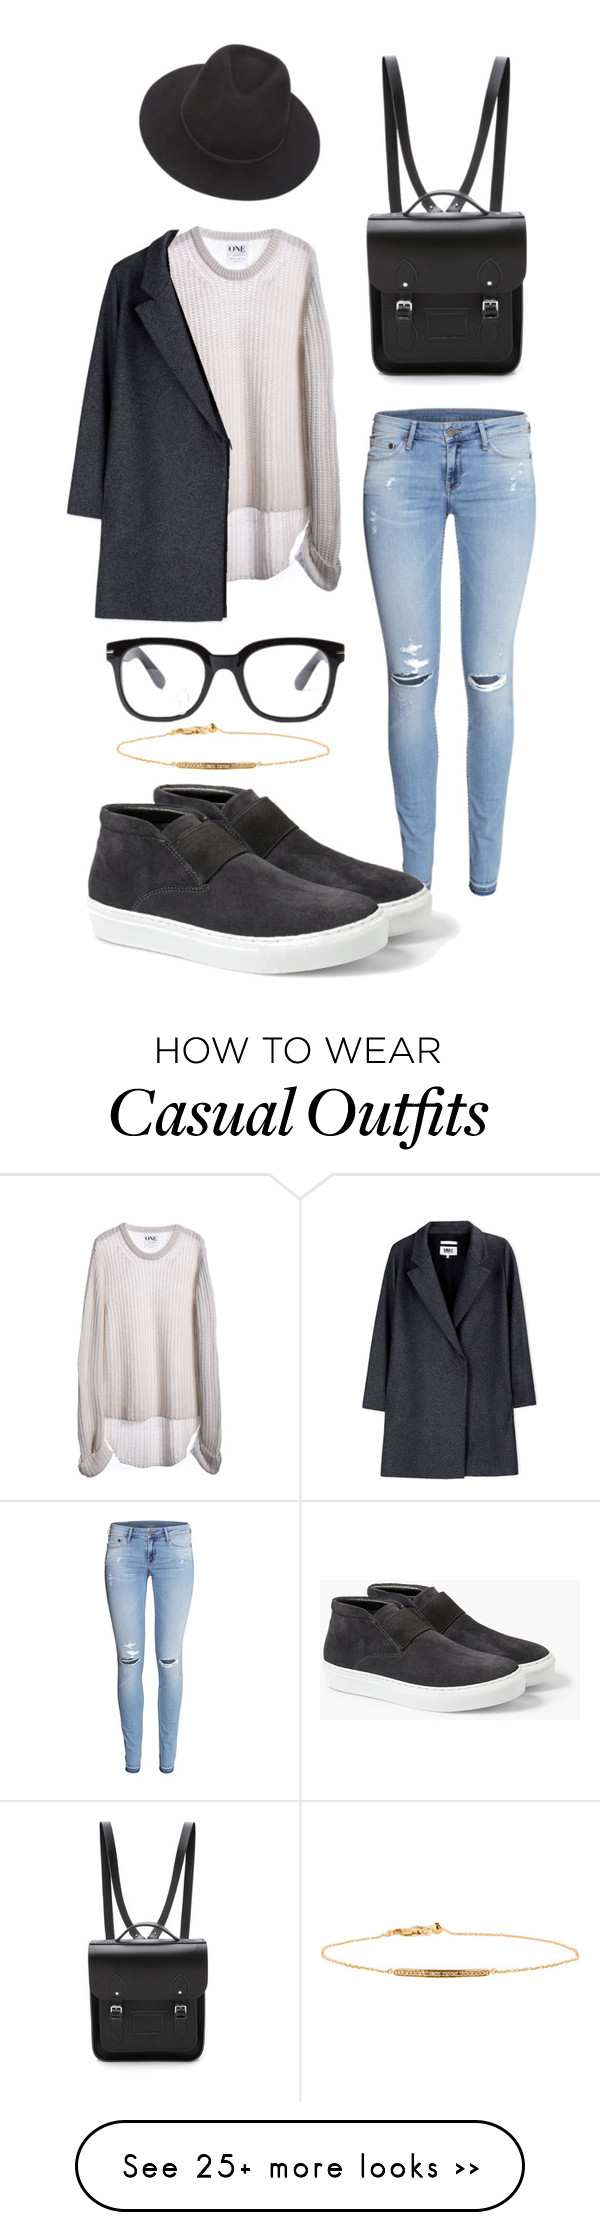 """Casual Saturday"" by nudge-v on Polyvore featuring mode, Forever 21, Brixton, Monica Vinader, One Teaspoon, H&M, MM6 Maison Margiela, The Cambridge Satchel Company en MANGO"